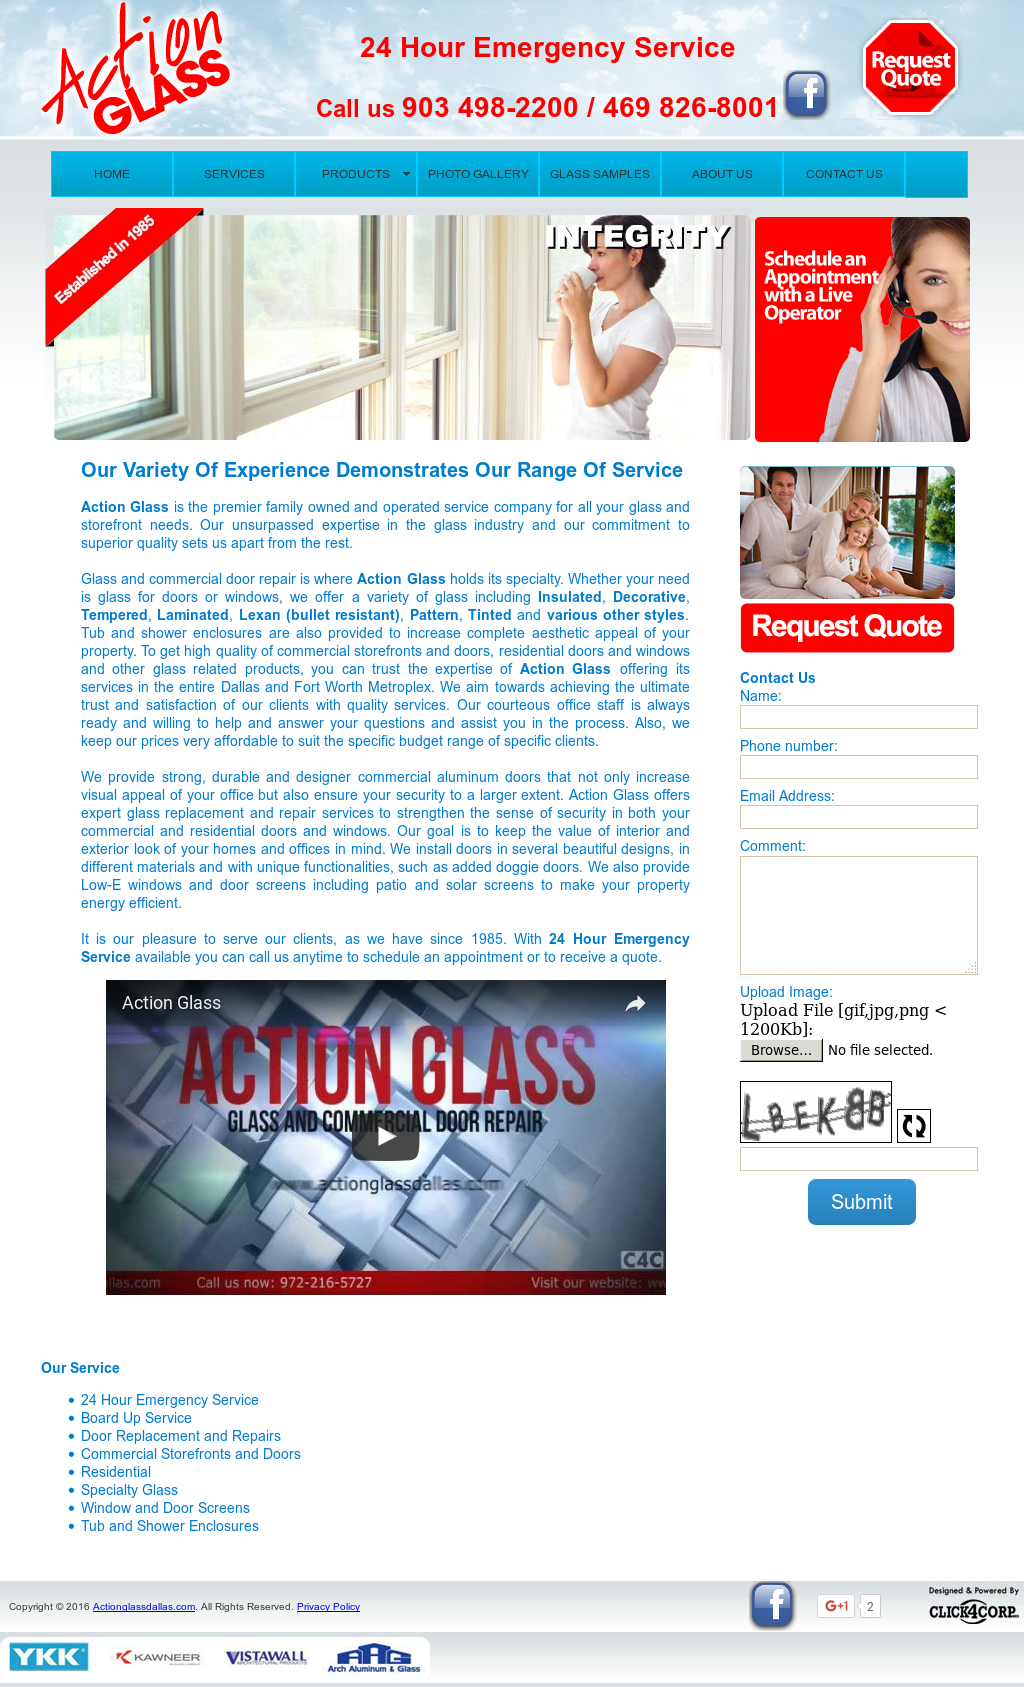 Actionglassdallas Competitors, Revenue And Employees   Owler Company Profile